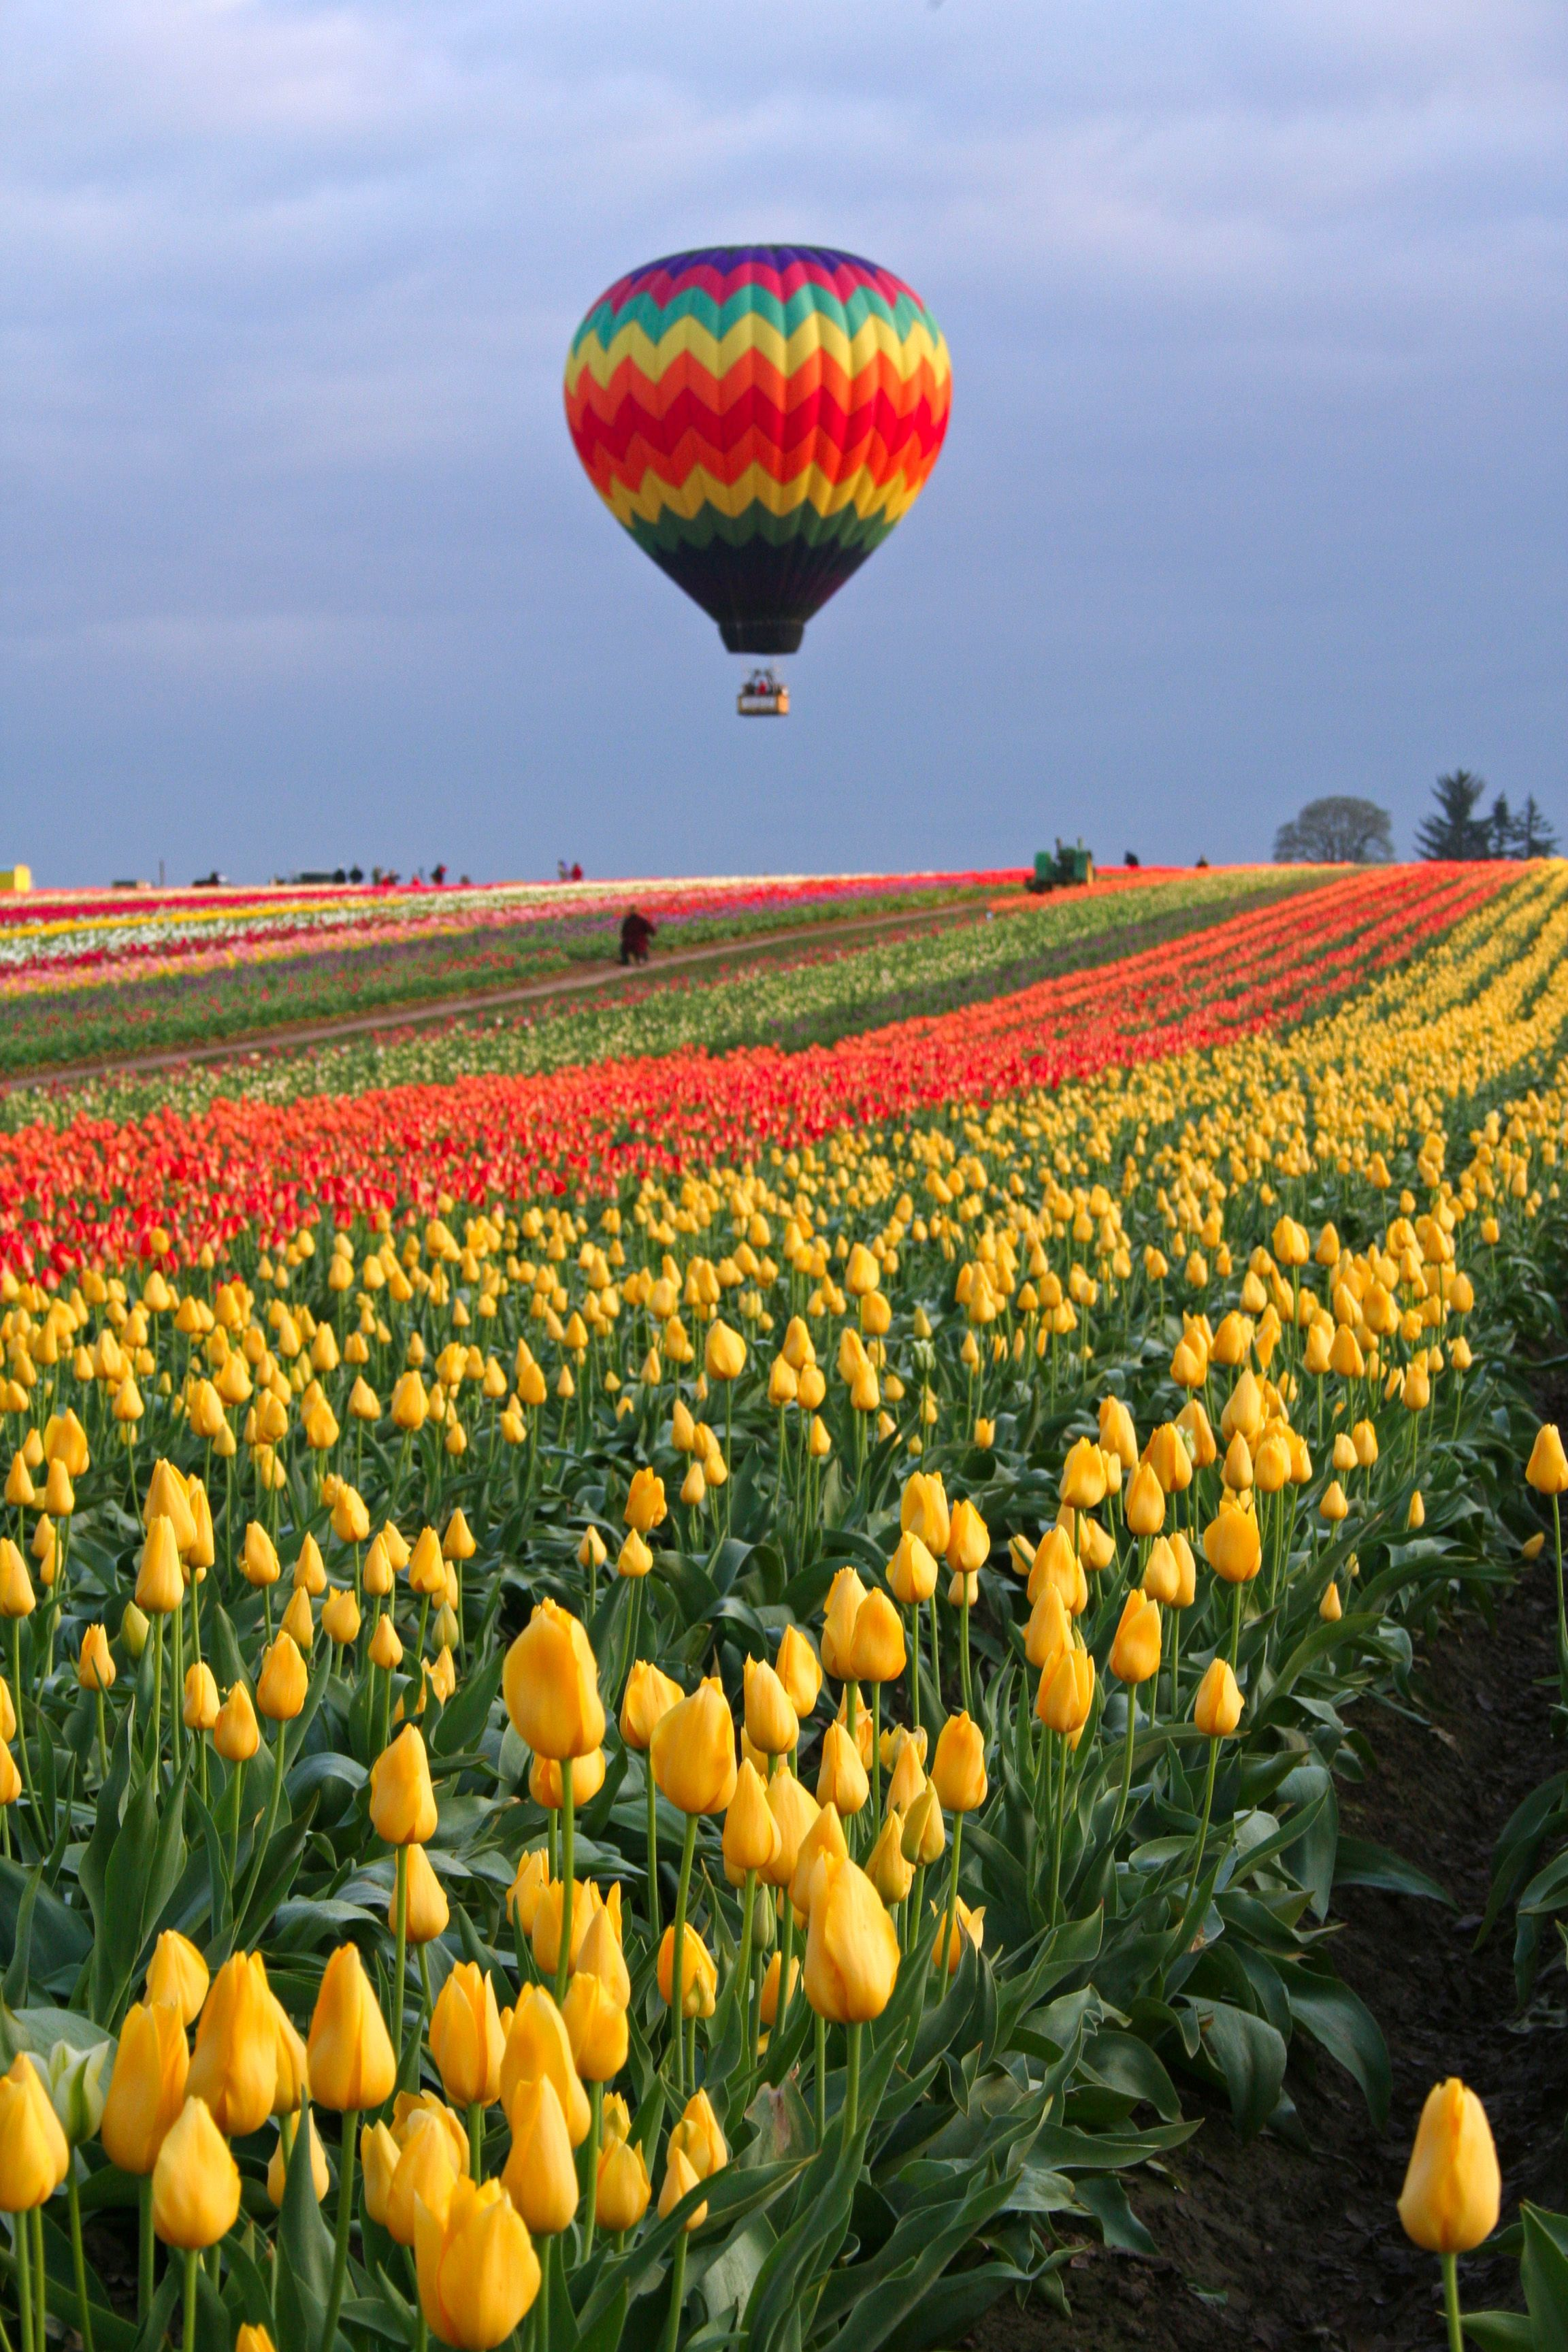 Home to the famous Wooden Shoe Tulip